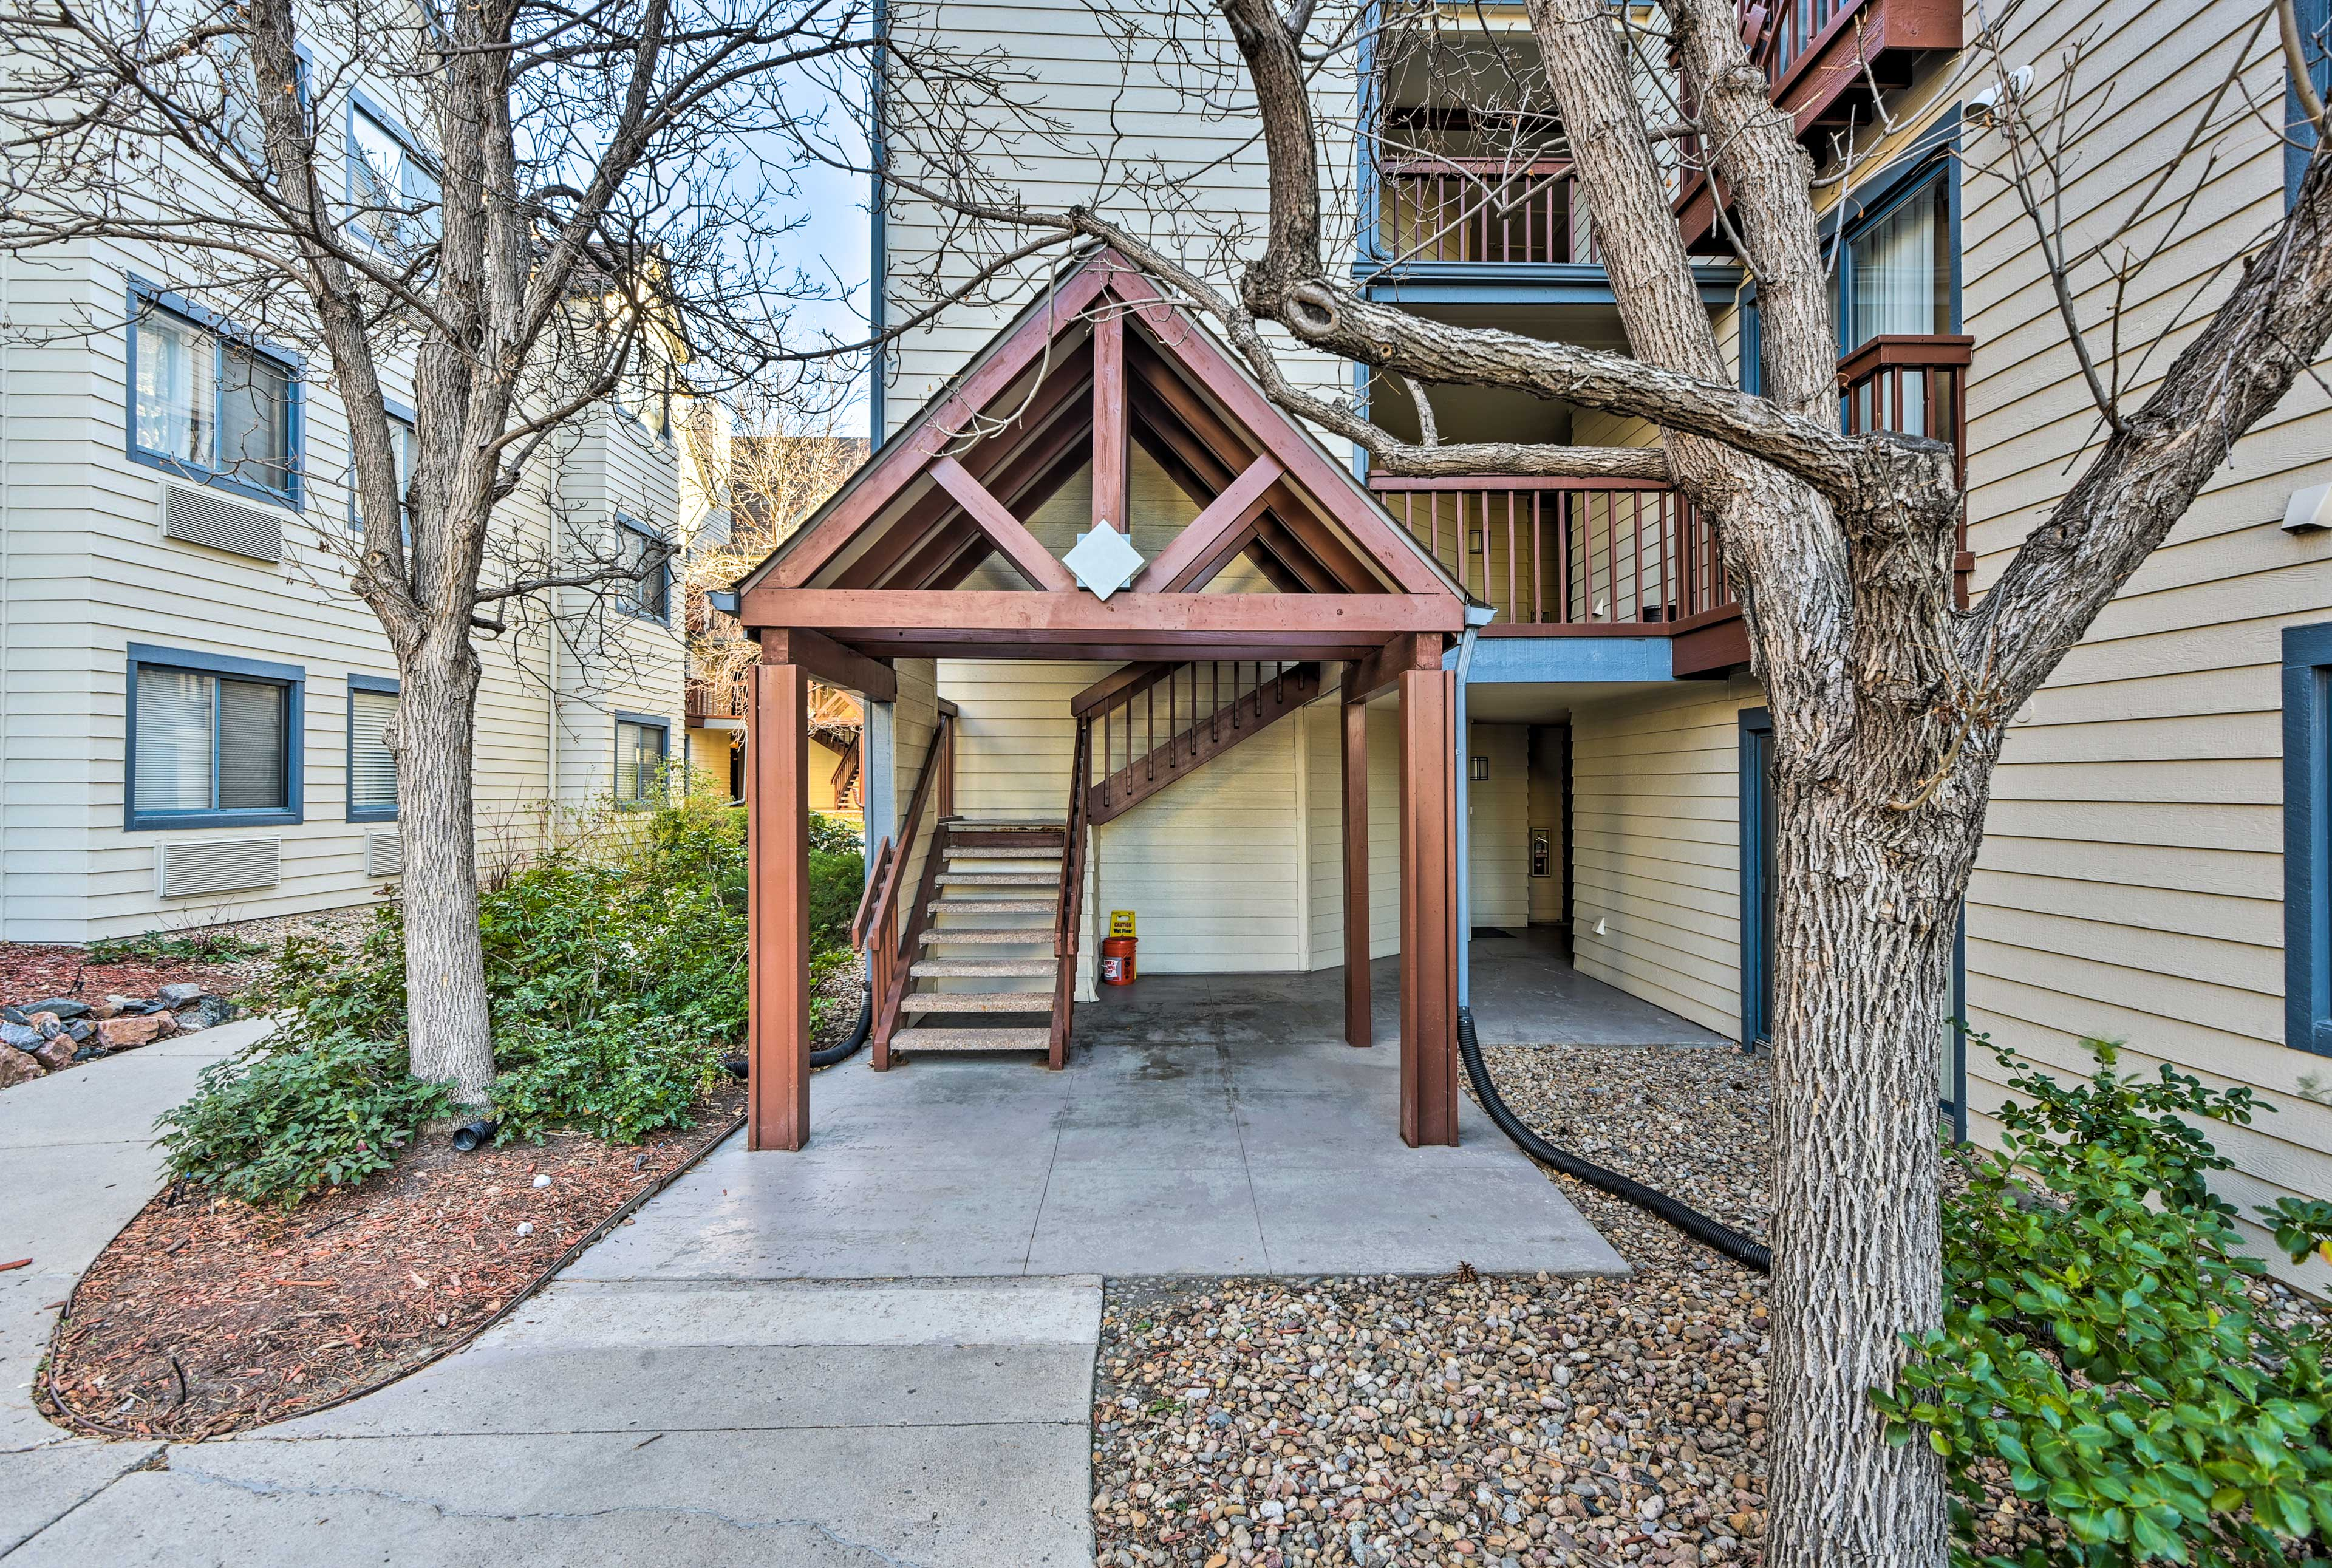 This home is minutes away from restaurants, shops, and the light rail to Denver!